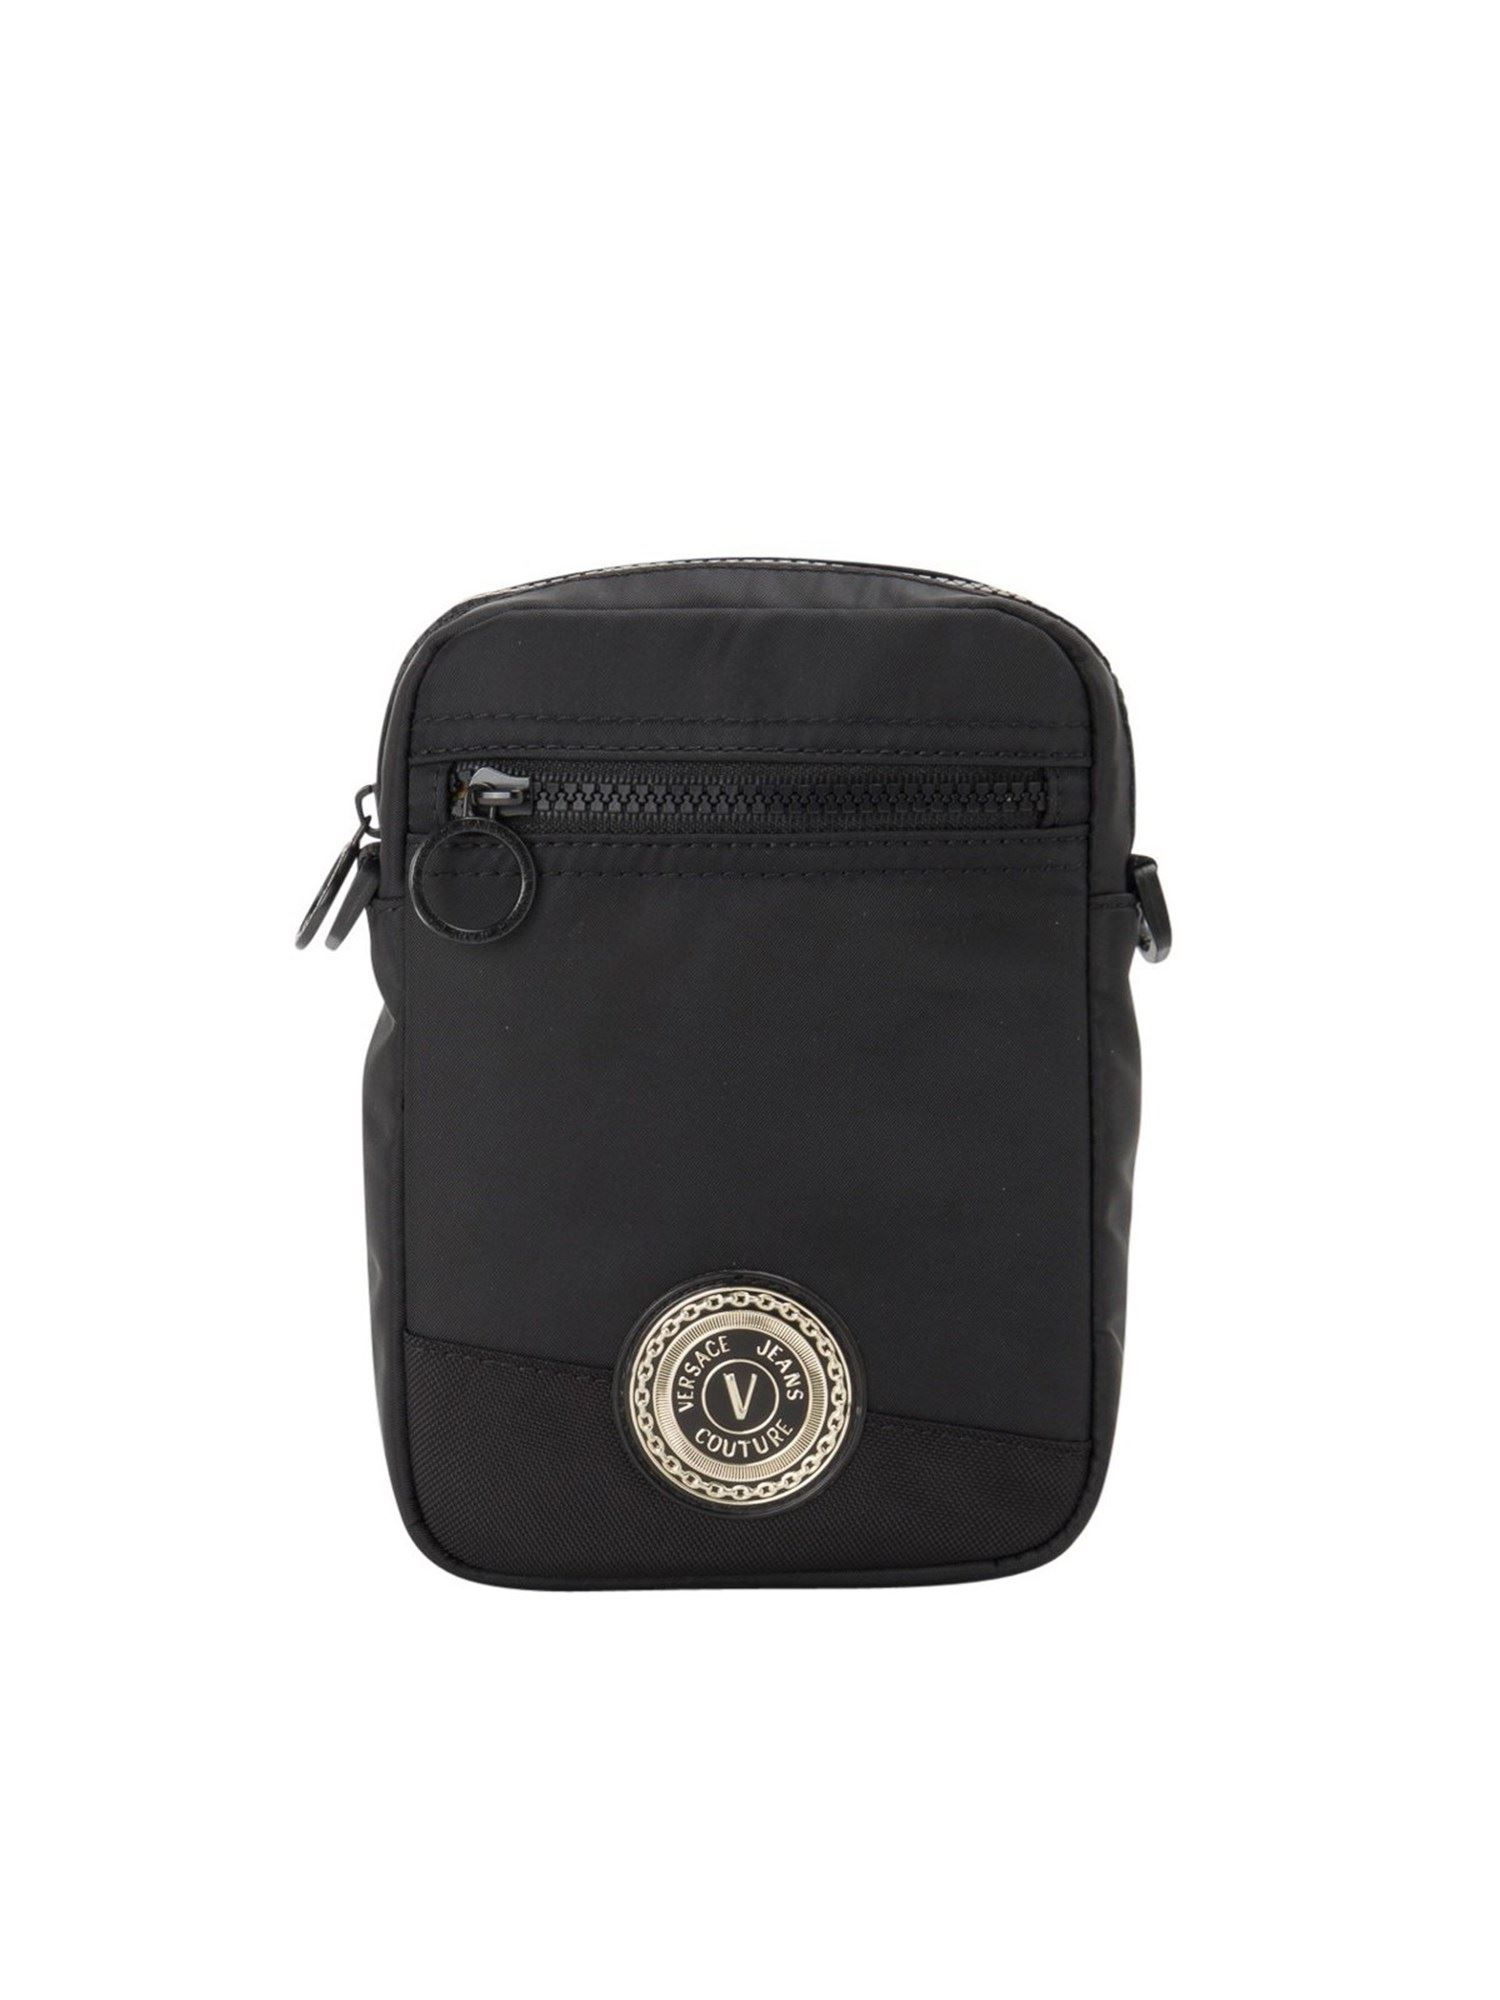 Versace Jeans Couture ZIP POCKET CROSSBODY BAG IN BLACK